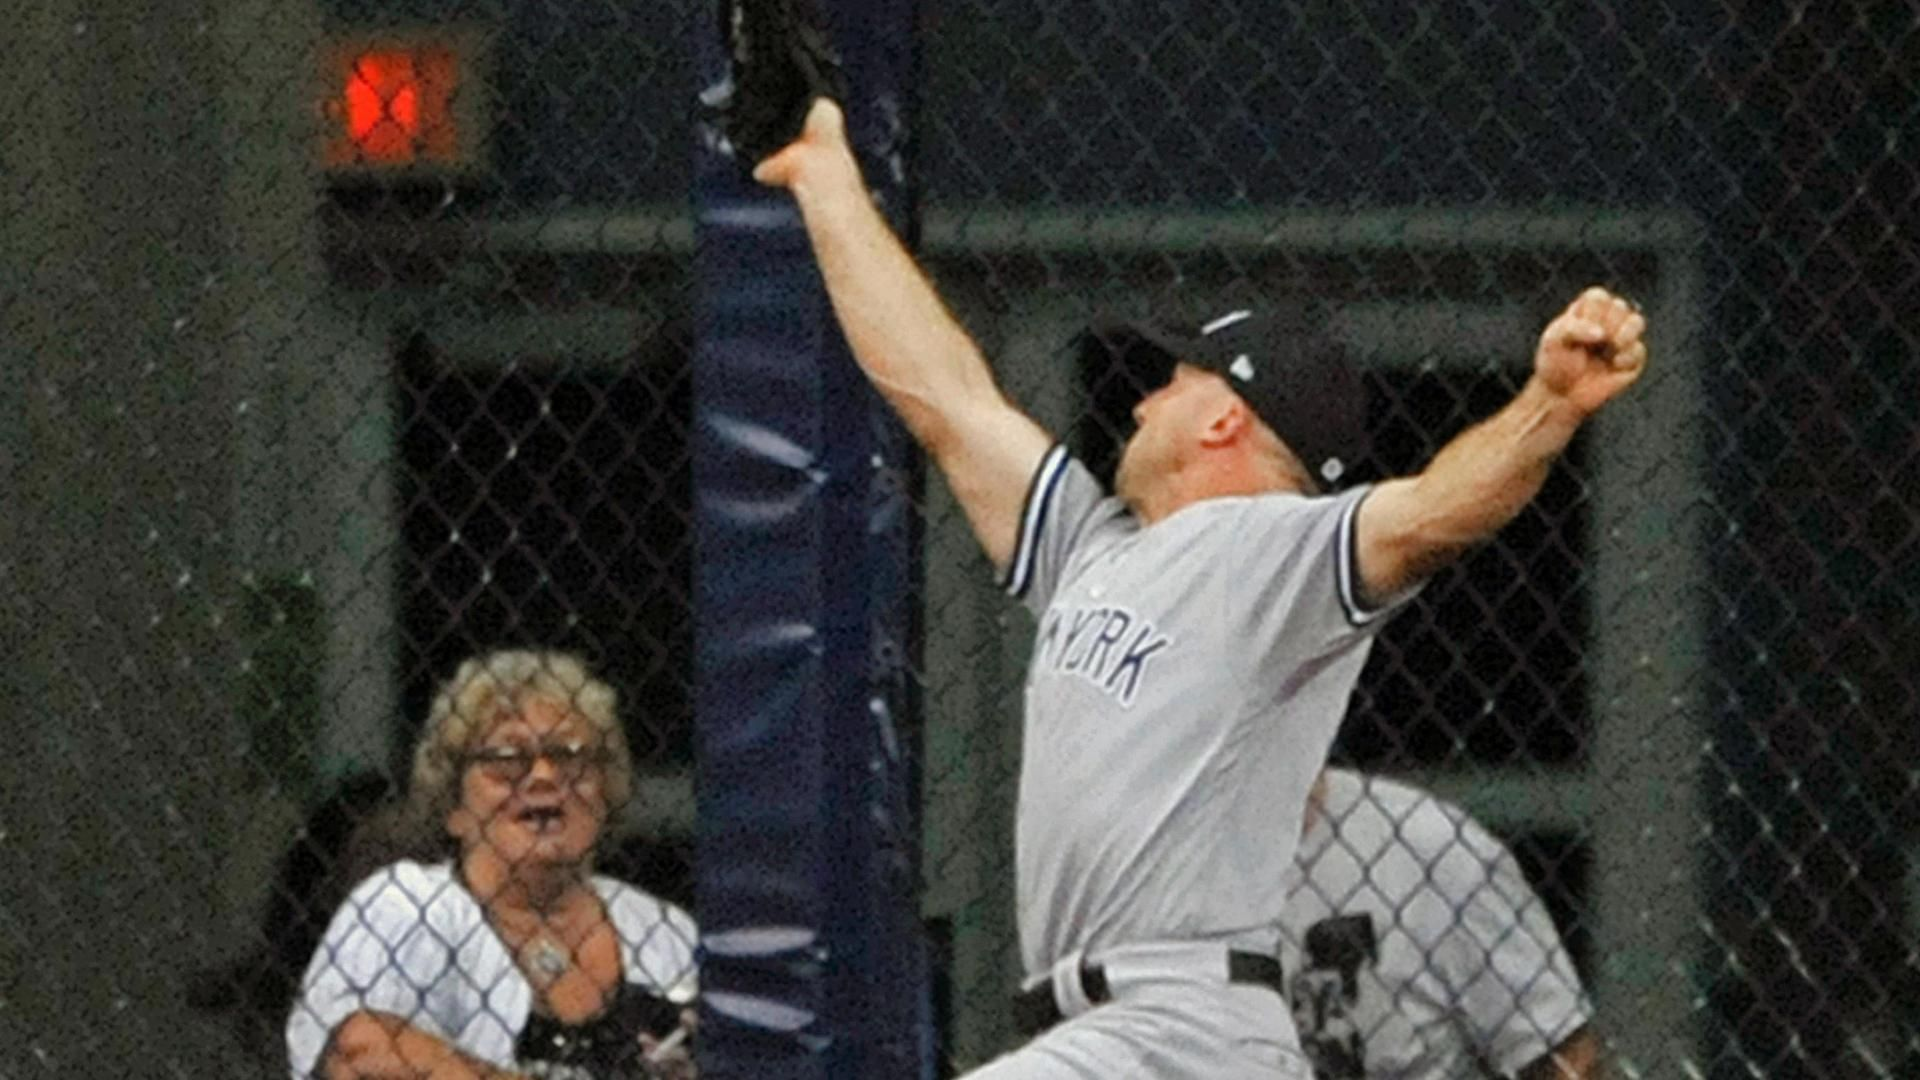 https://secure.espncdn.com/combiner/i?img=/media/motion/2018/0924/dm_180924_MLB_Yankees_gardner_catch1349/dm_180924_MLB_Yankees_gardner_catch1349.jpg